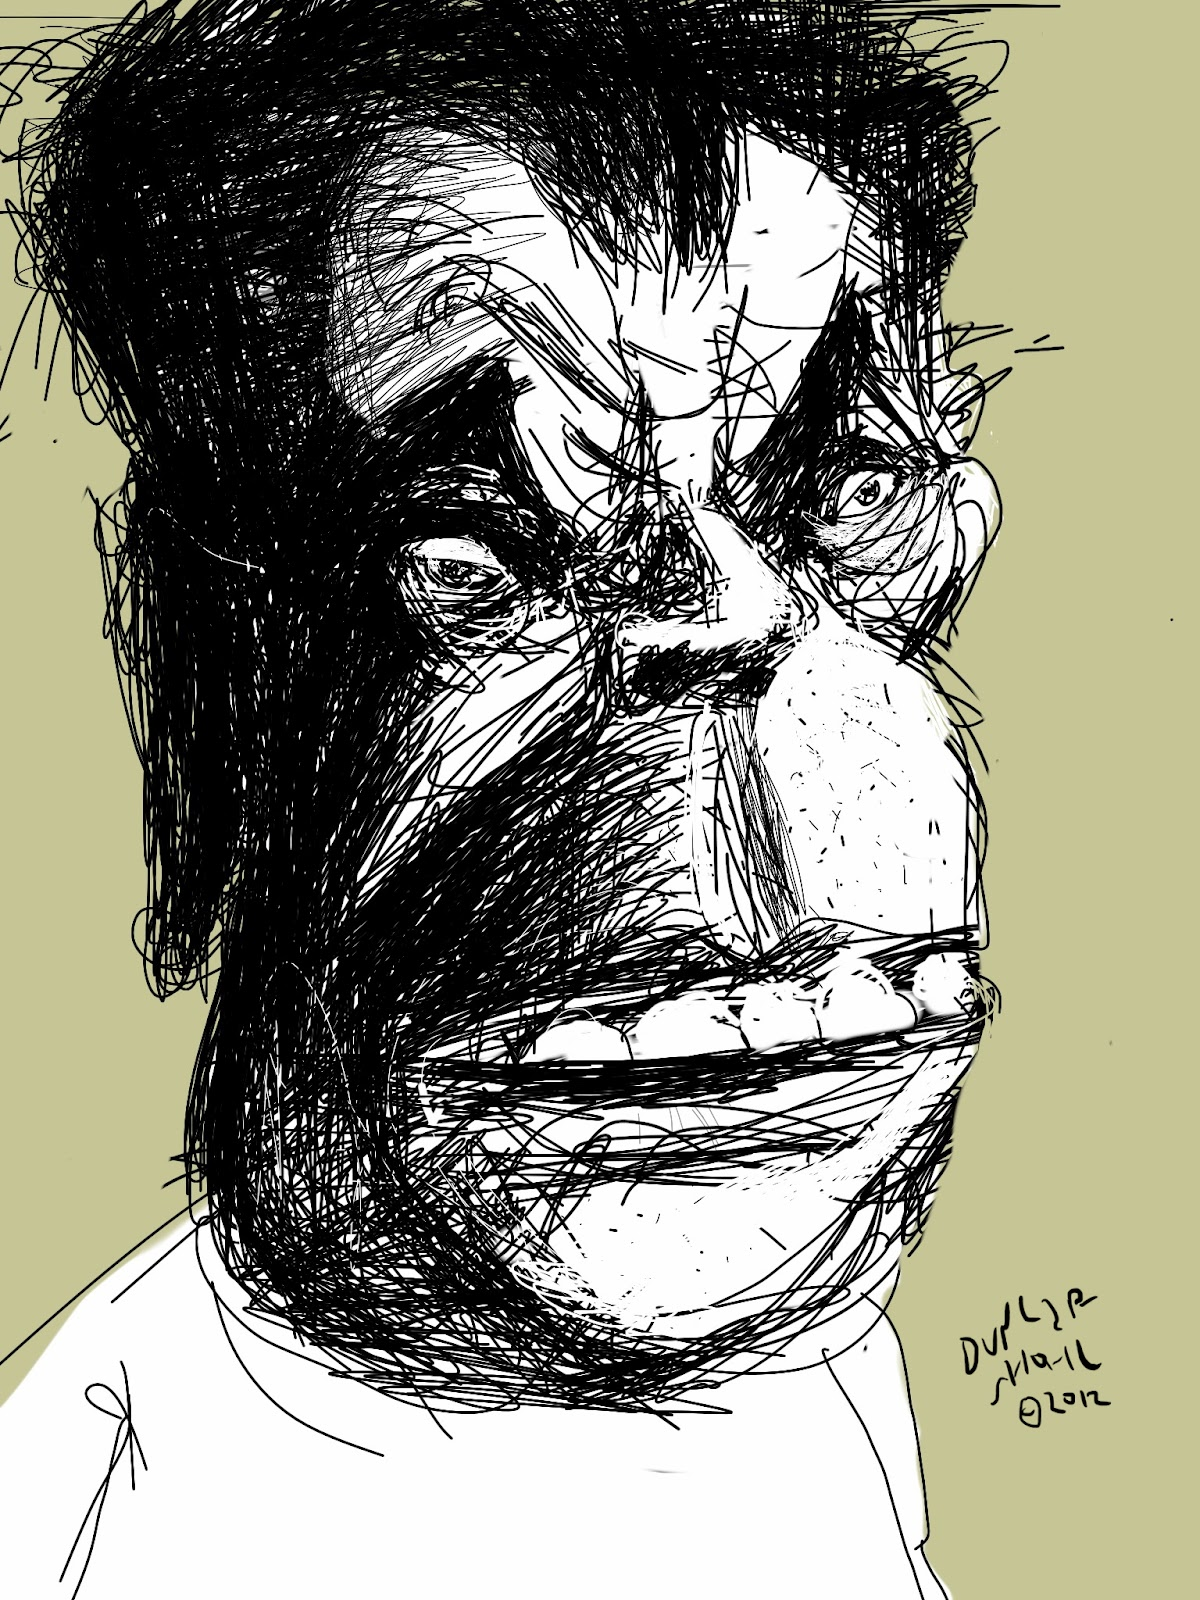 Frozen Grin Not Drawing Jack Nicholson Is Harder Than Drawing Him